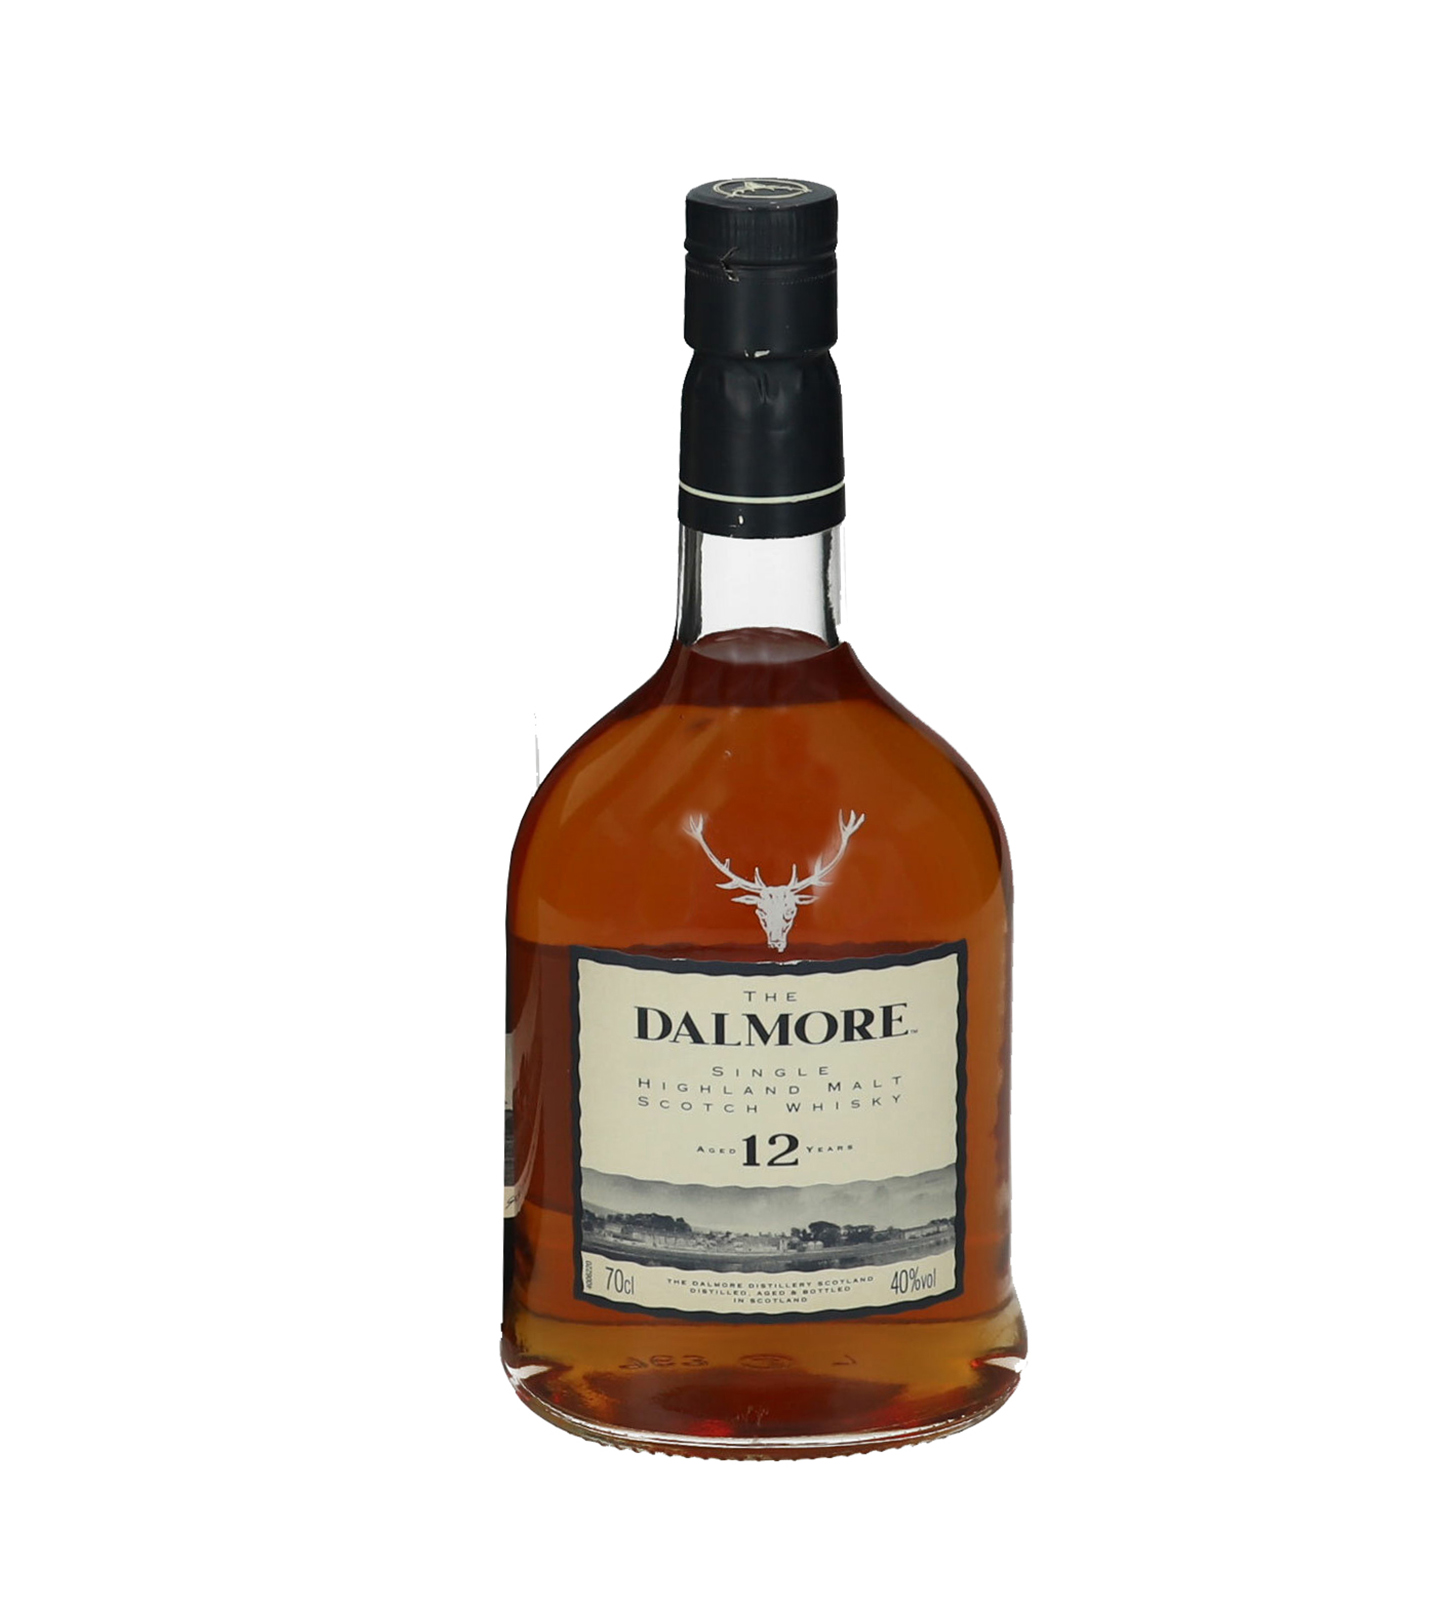 Dalmore 12 years – Old Grey Bottling